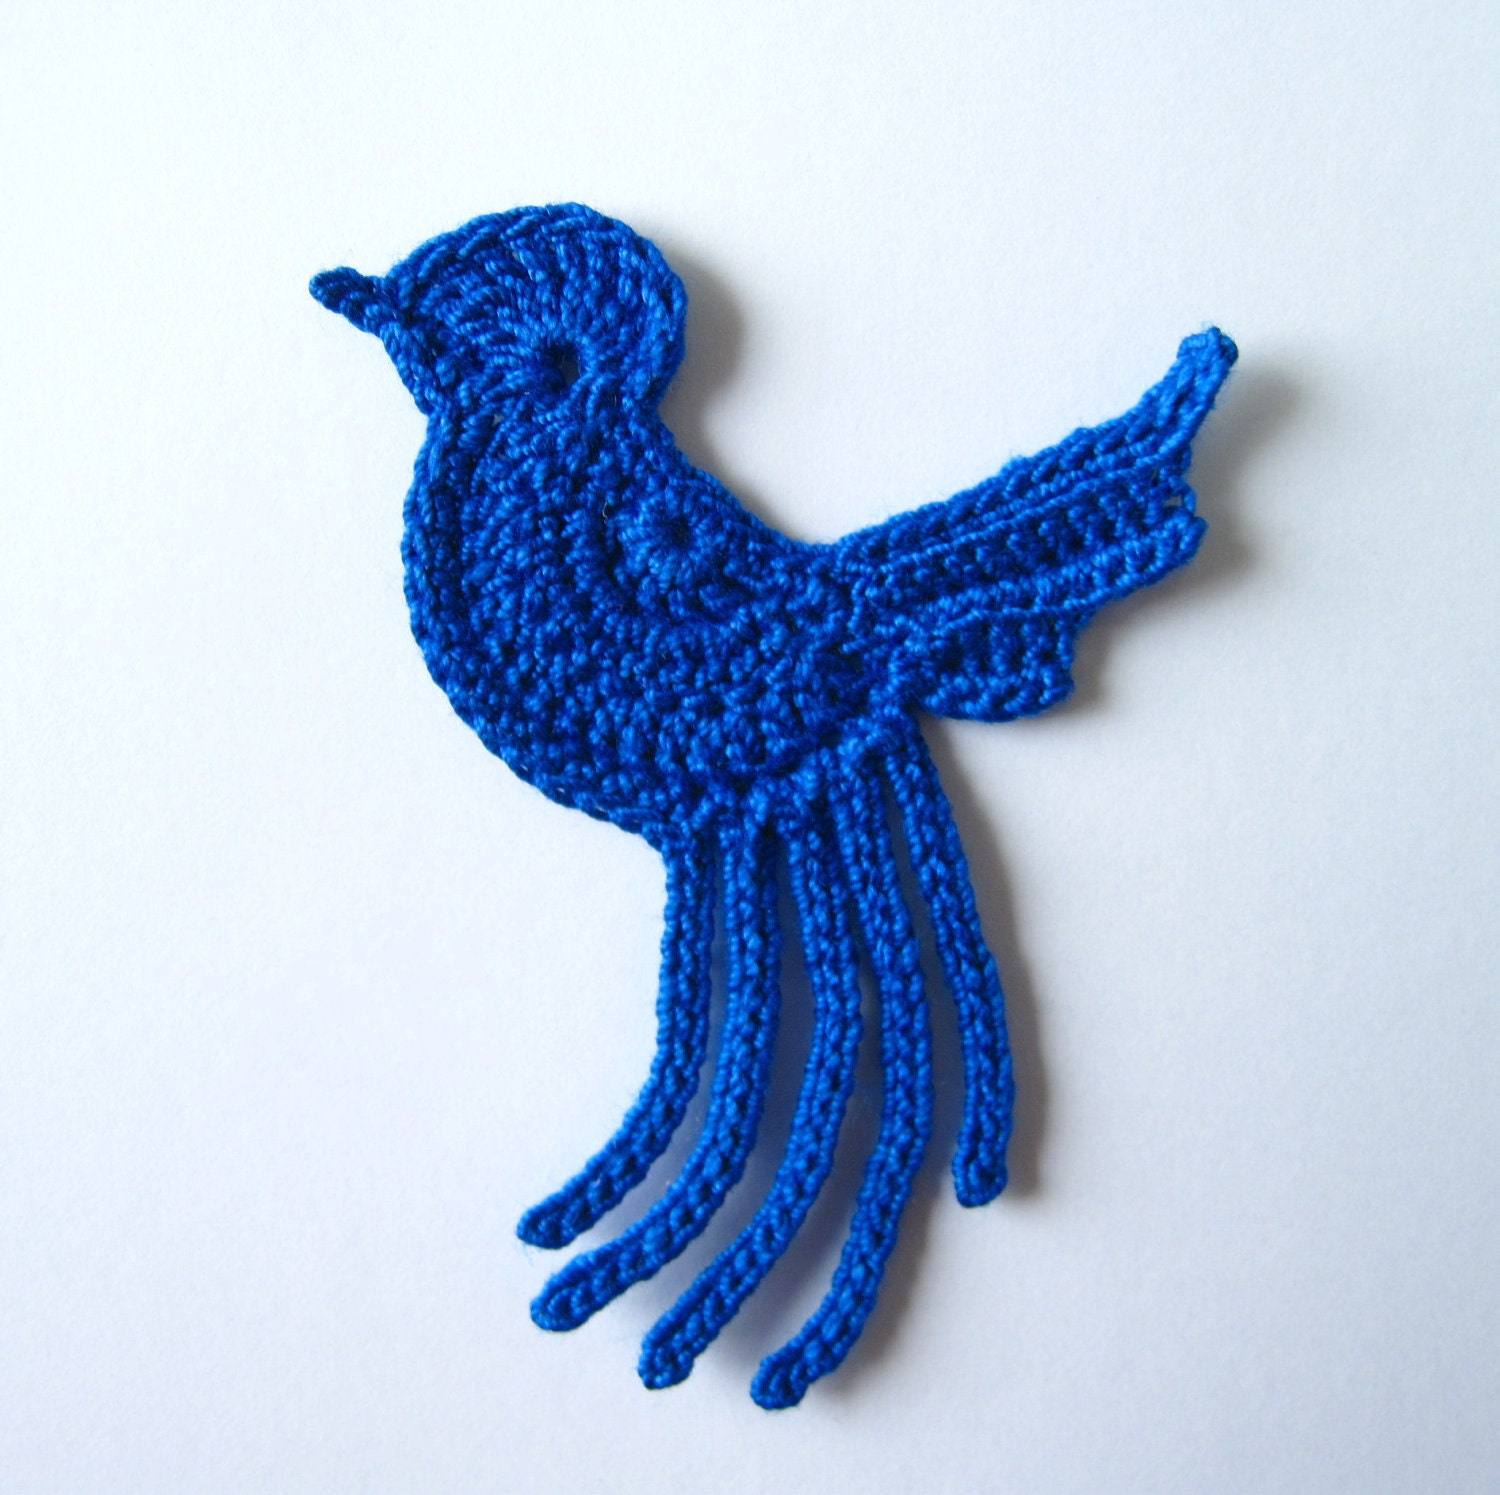 Crochet Blue Bird Applique By GoldenLucyCrafts On Etsy